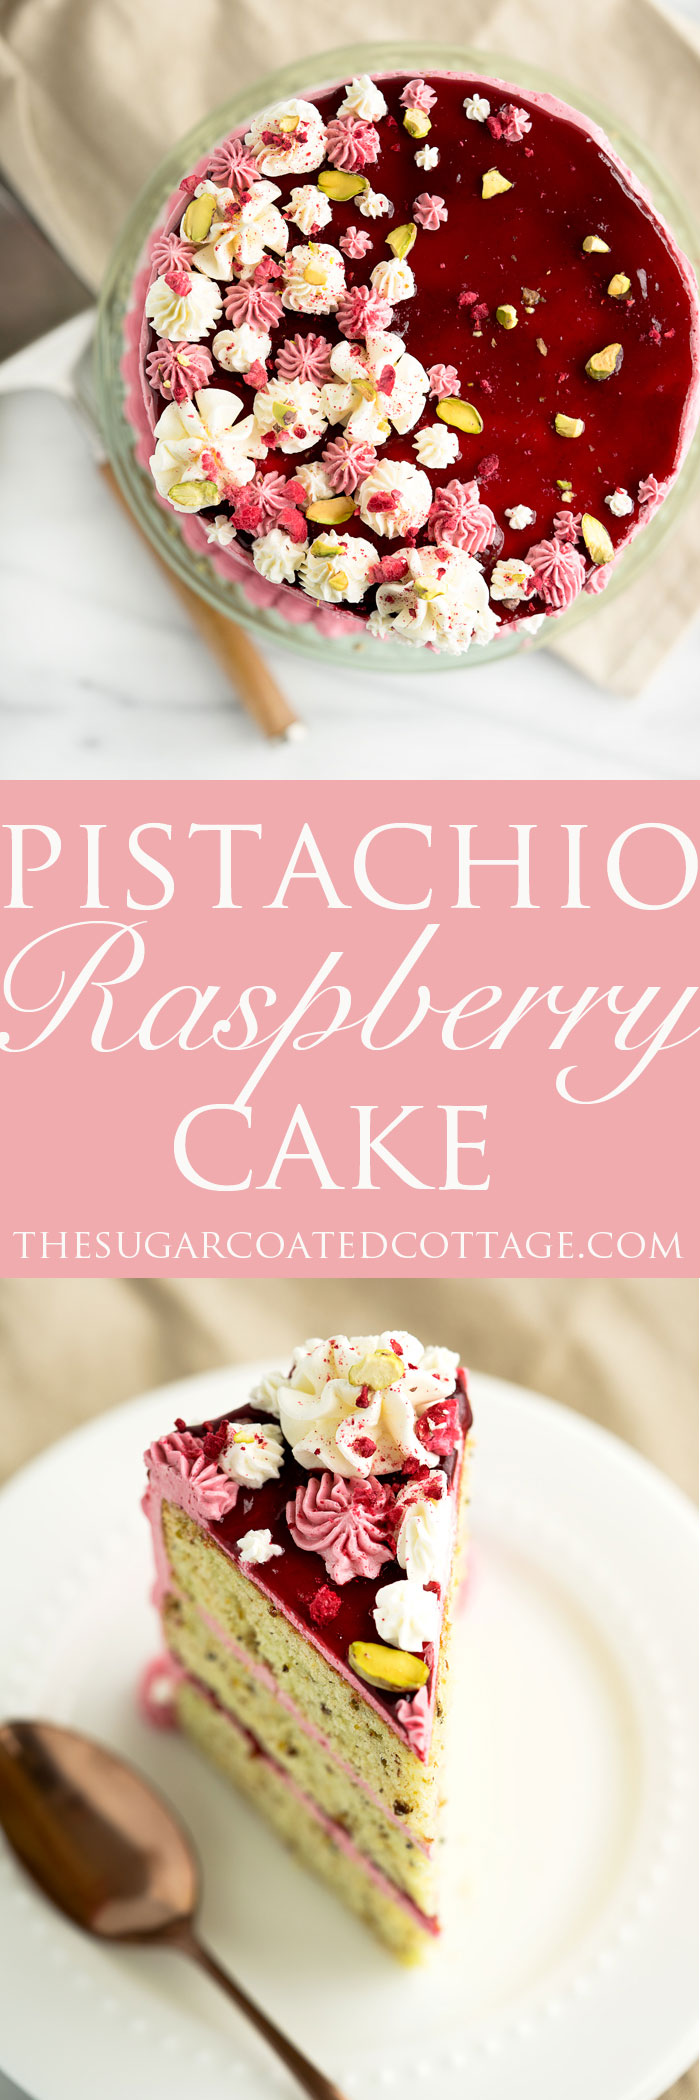 Pistachio Raspberry Cake Recipe. Deliciously nutty layers of cake enrobed in a beautiful raspberry swiss meringue buttercream. Looking for a unique cake for that special occasion then this is it! | thesugarcoatedcottage.com #cake #recipe #pistachiocake #buttercream #raspberry